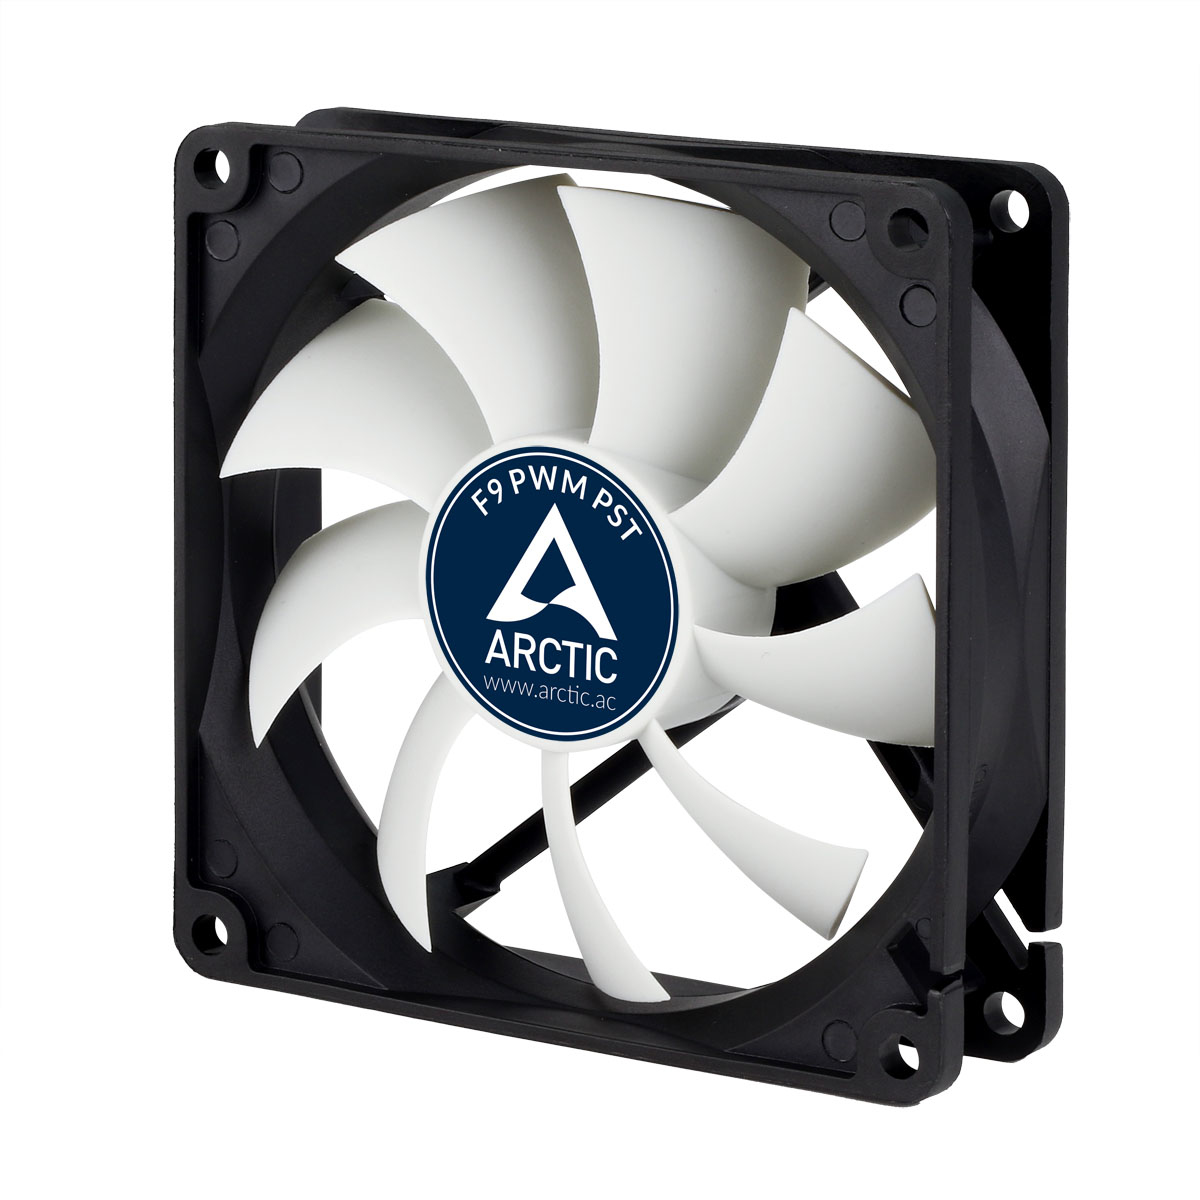 ARCTIC F9 PWM PST 4-Pin PWM fan with standard case